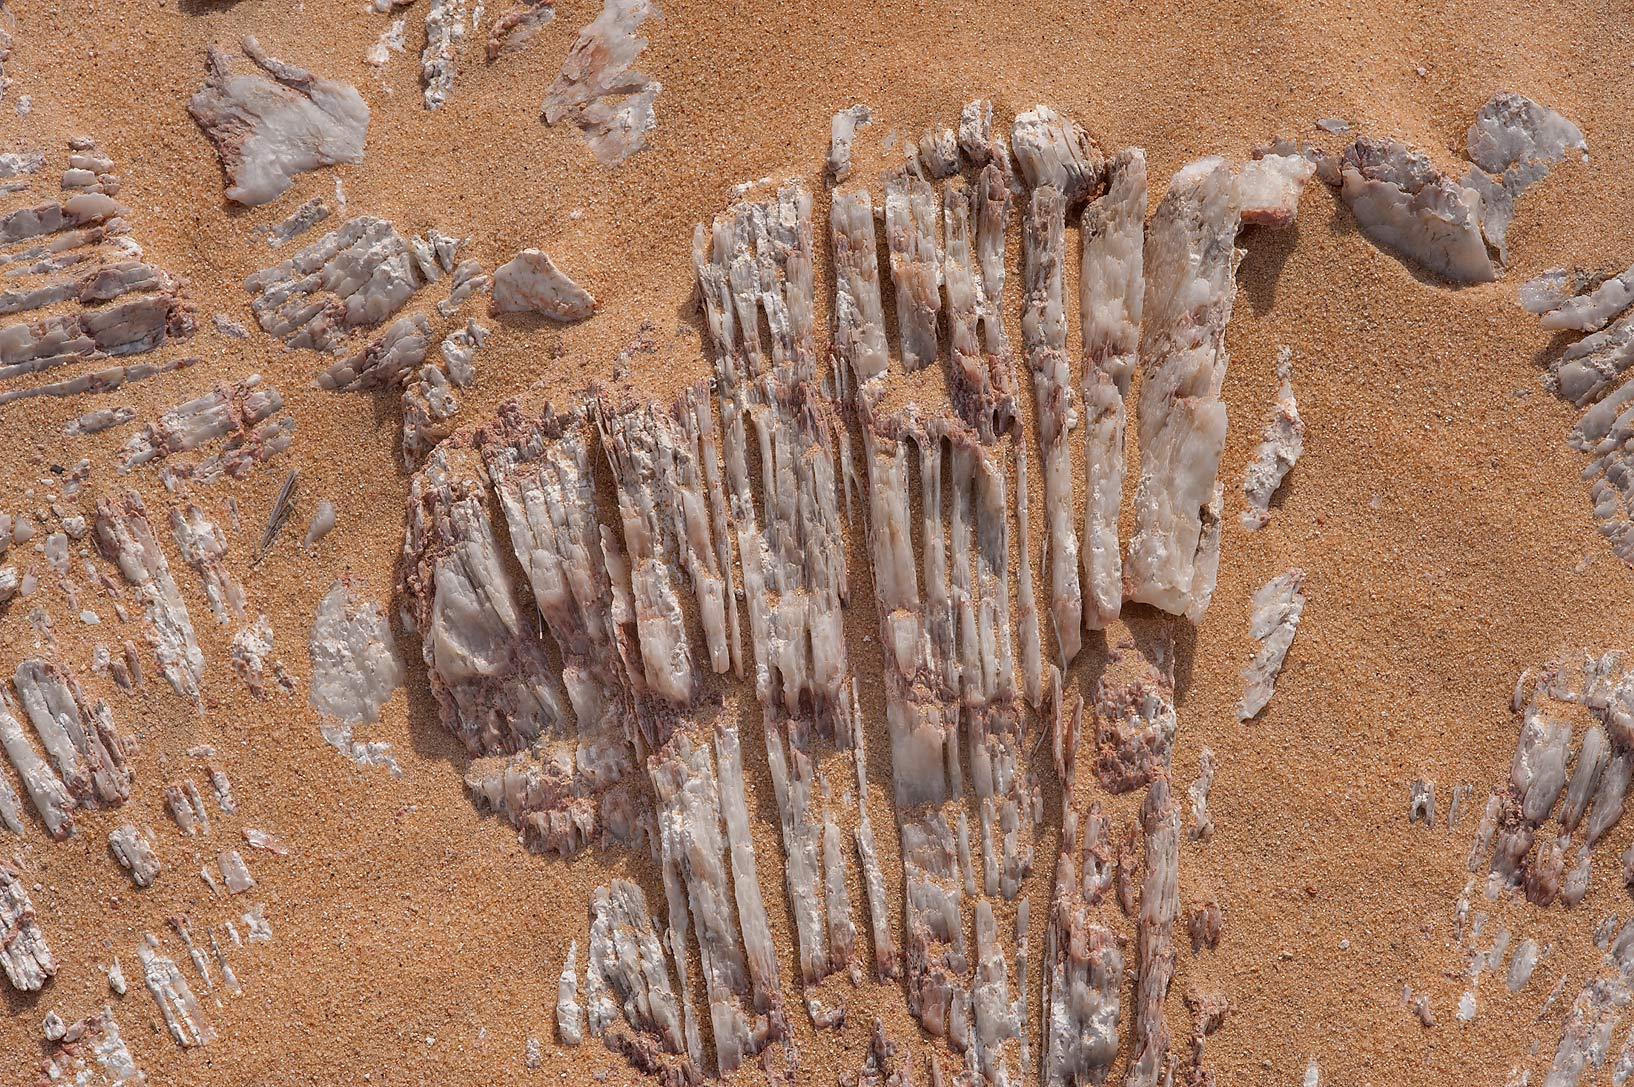 Patterns of gypsum crystals (selenite) in area of Jebel Al-Nakhsh in south-western Qatar